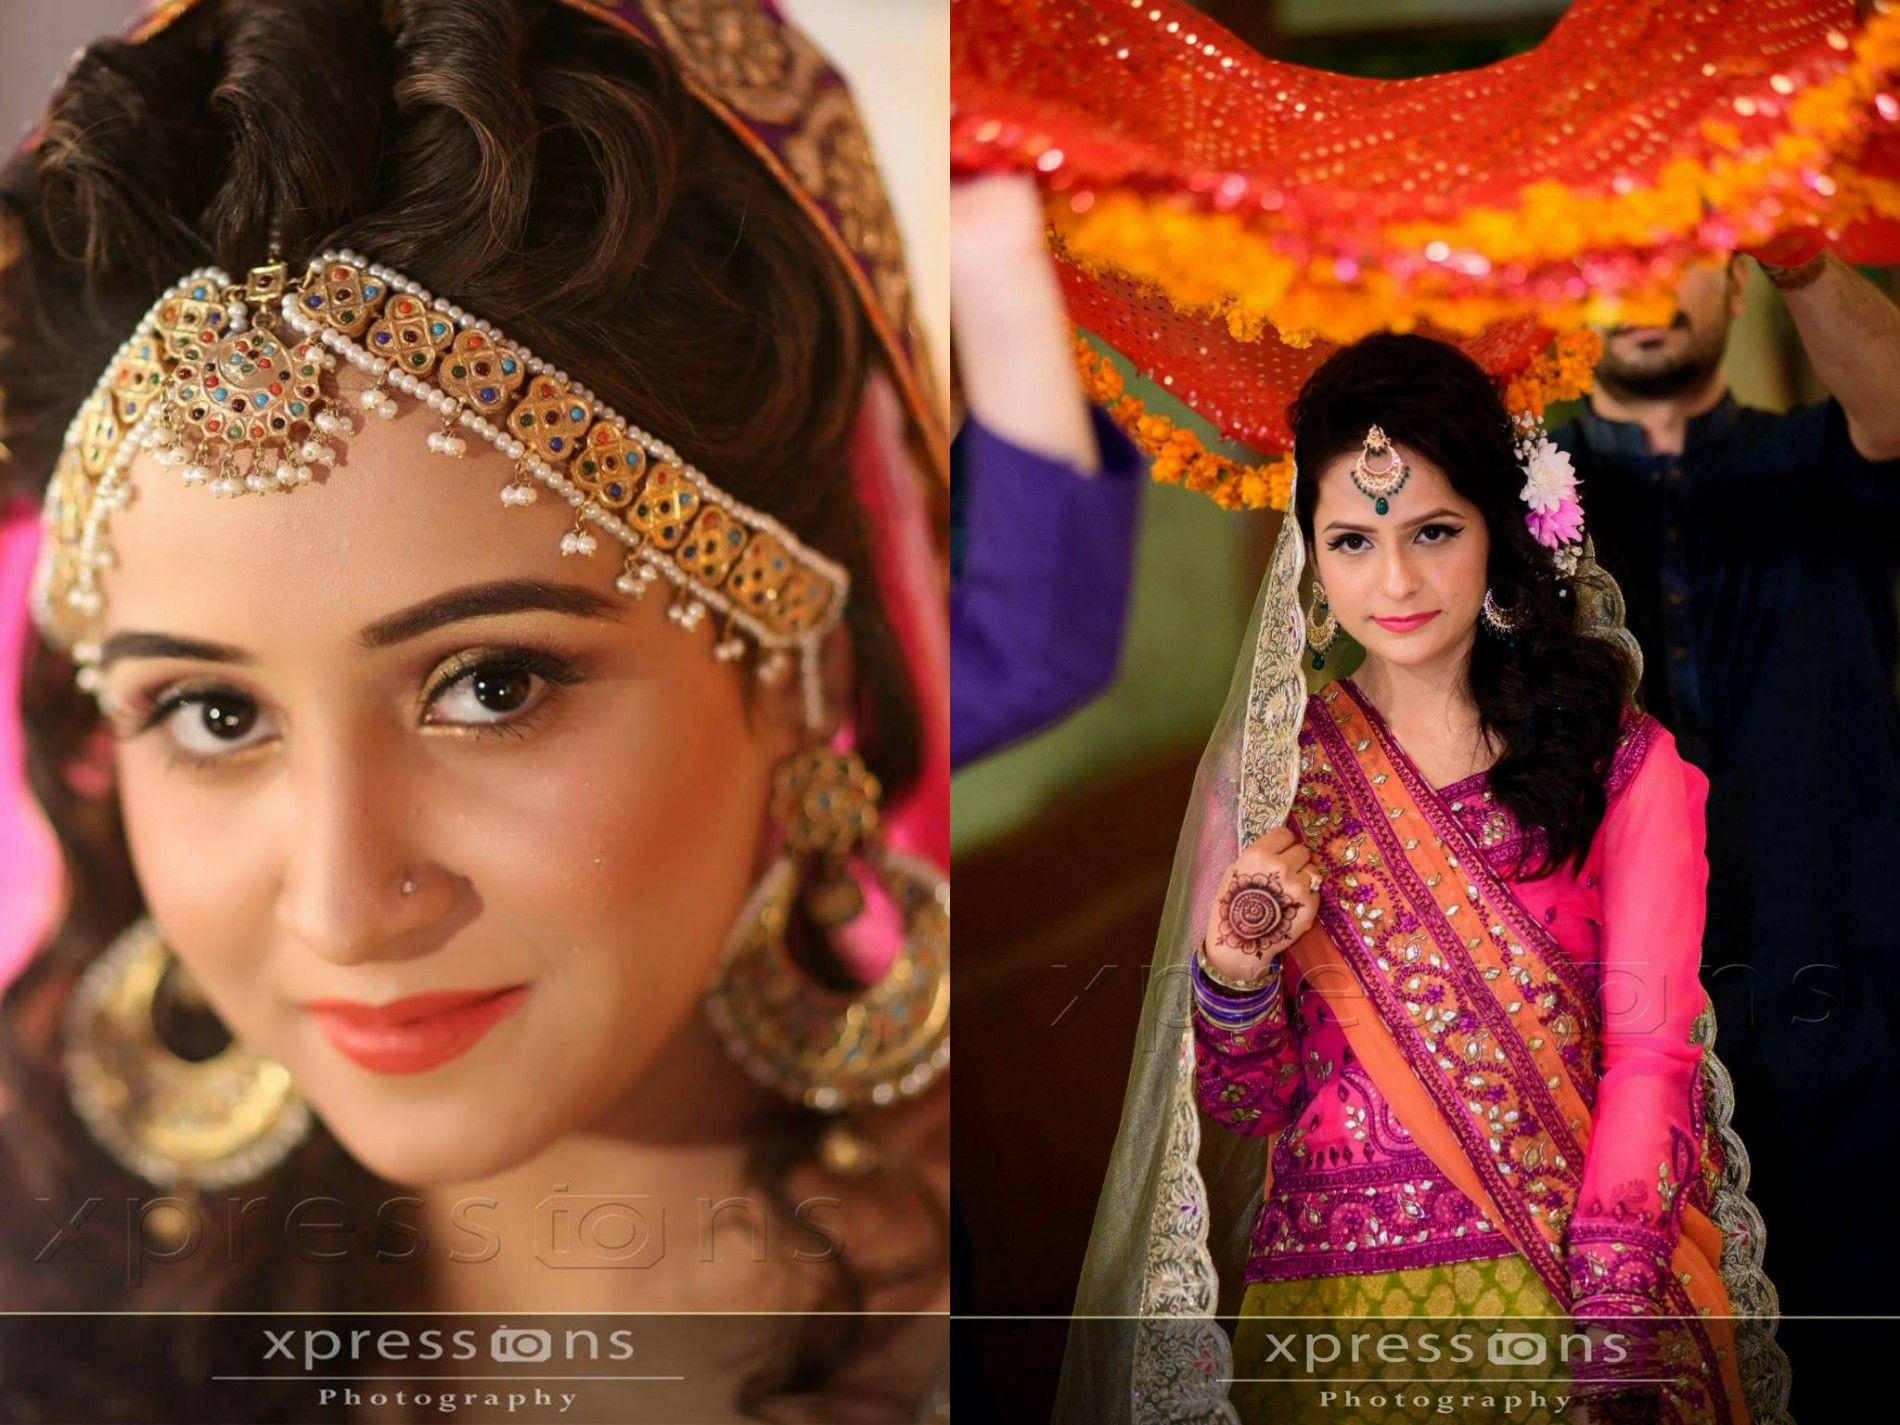 Xpressions photography | Mehndi brides, Beautiful, Nose stud